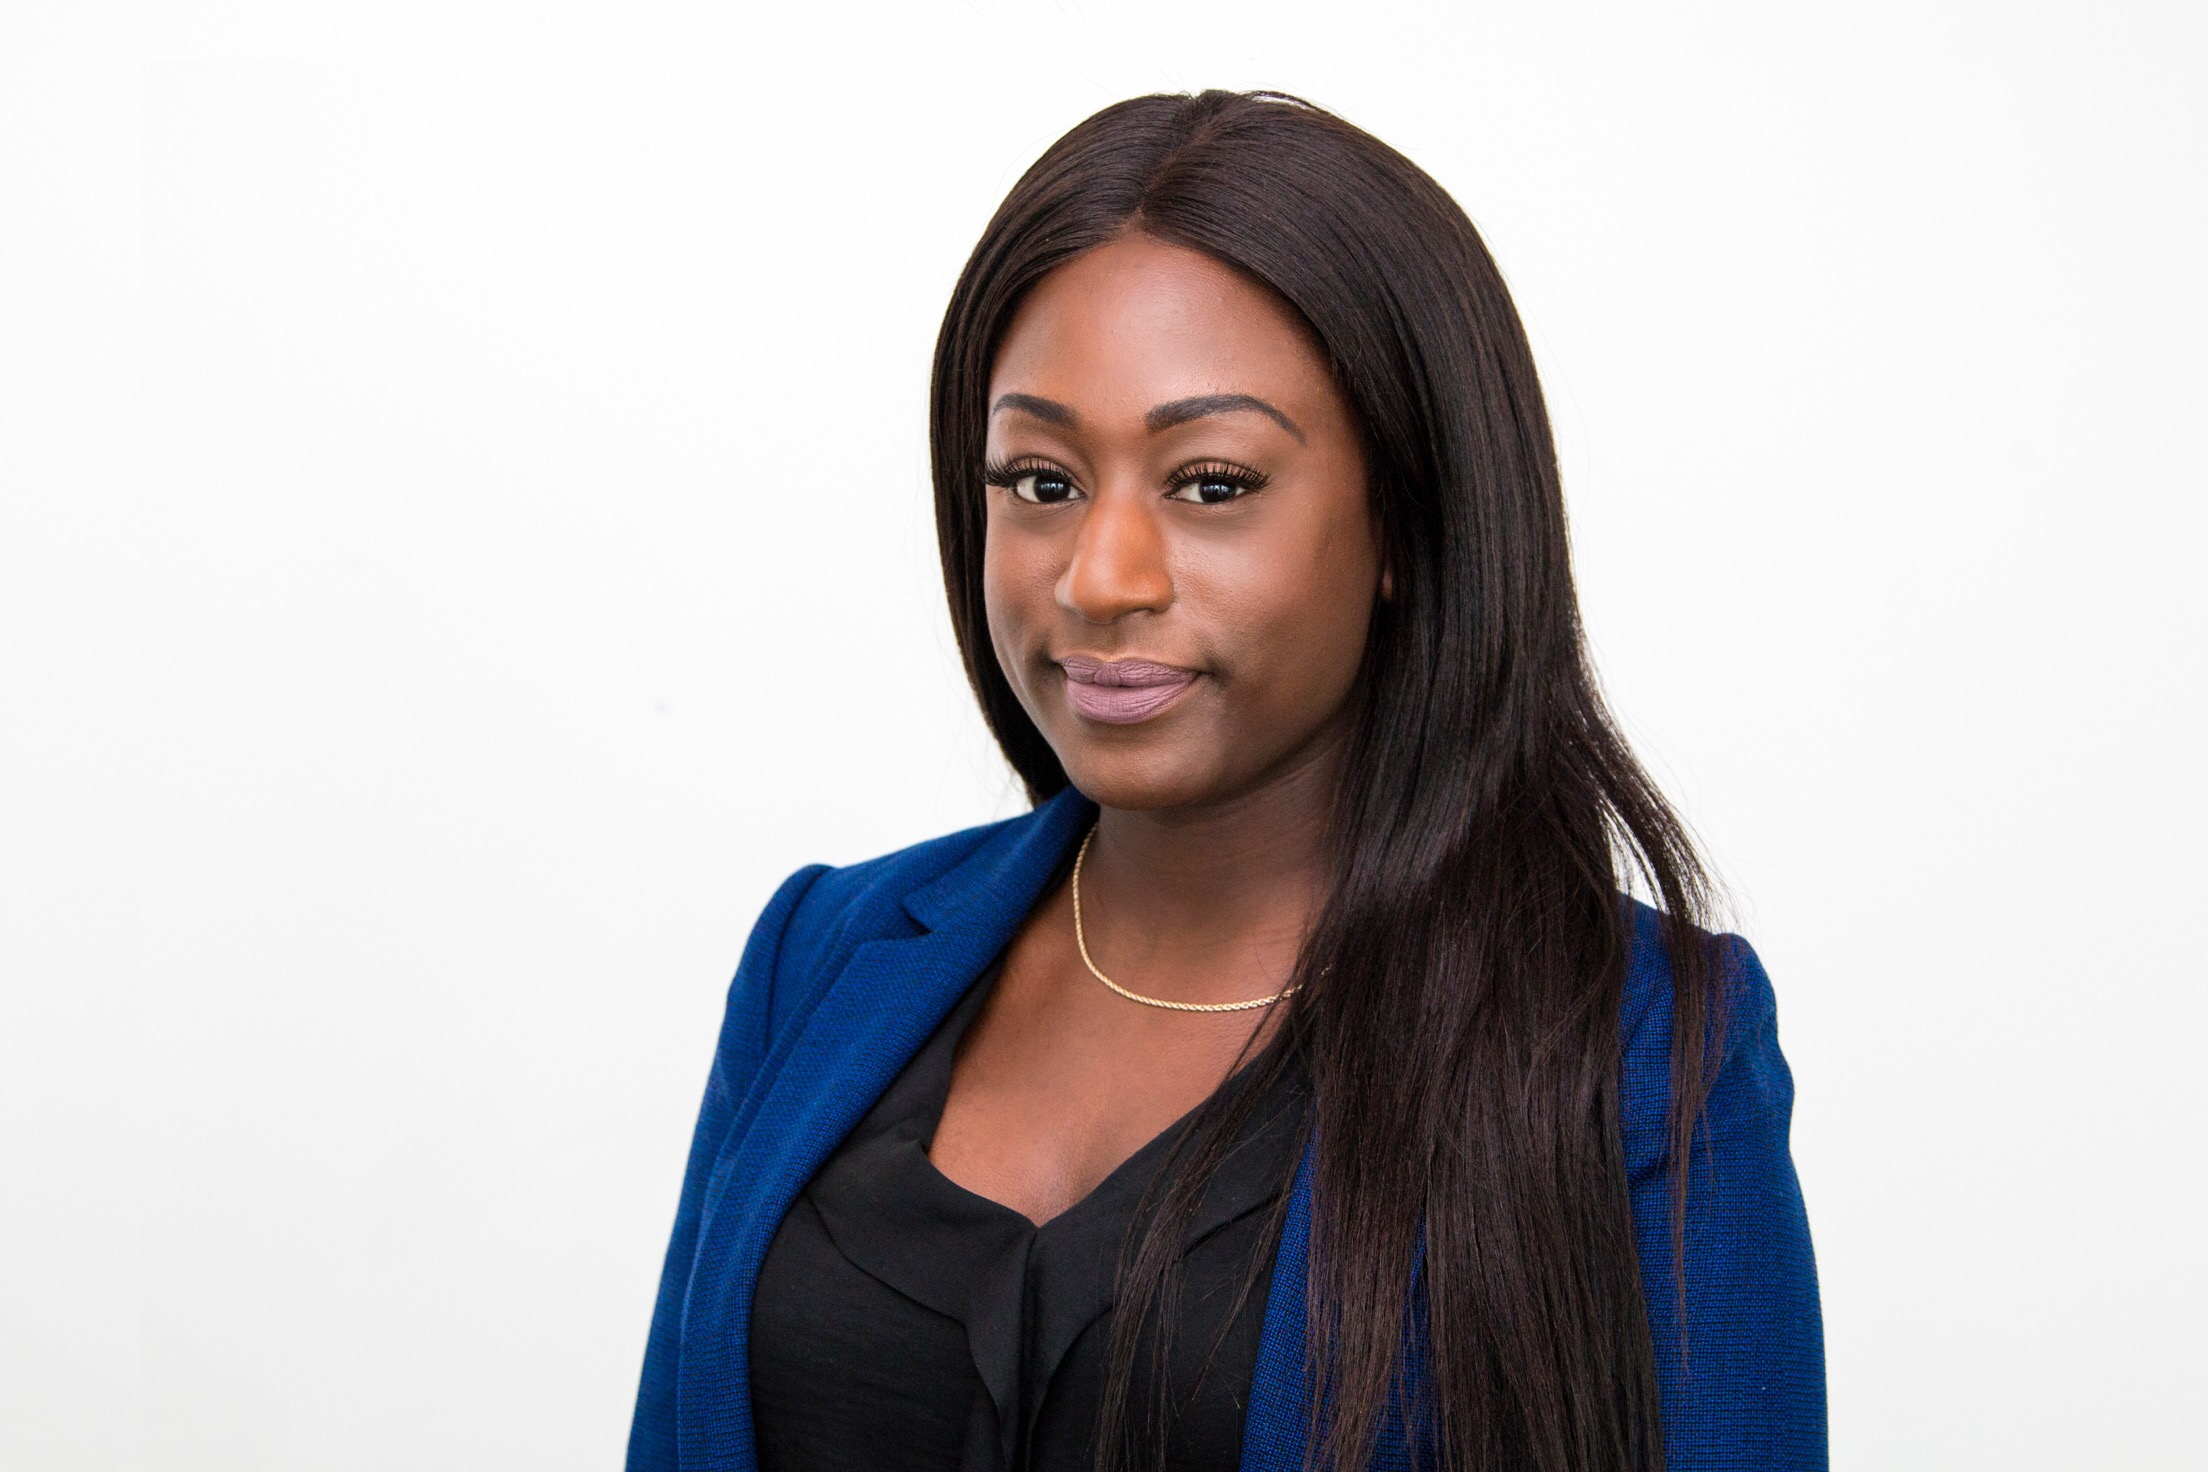 Merrick family law solicitor Gabrielle Dugan